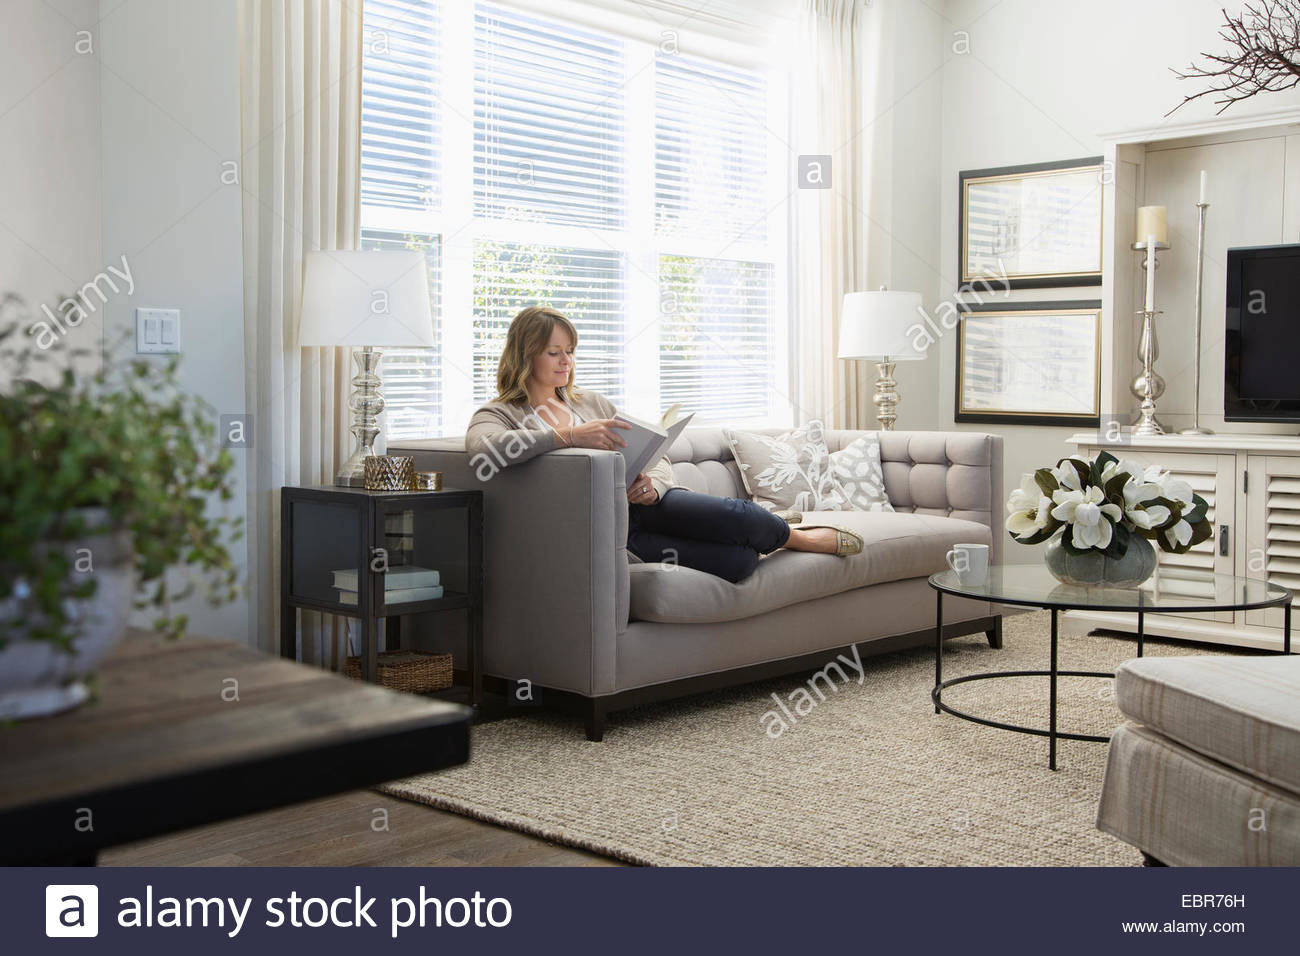 Superior Woman Reading Book On Sofa In Living Room